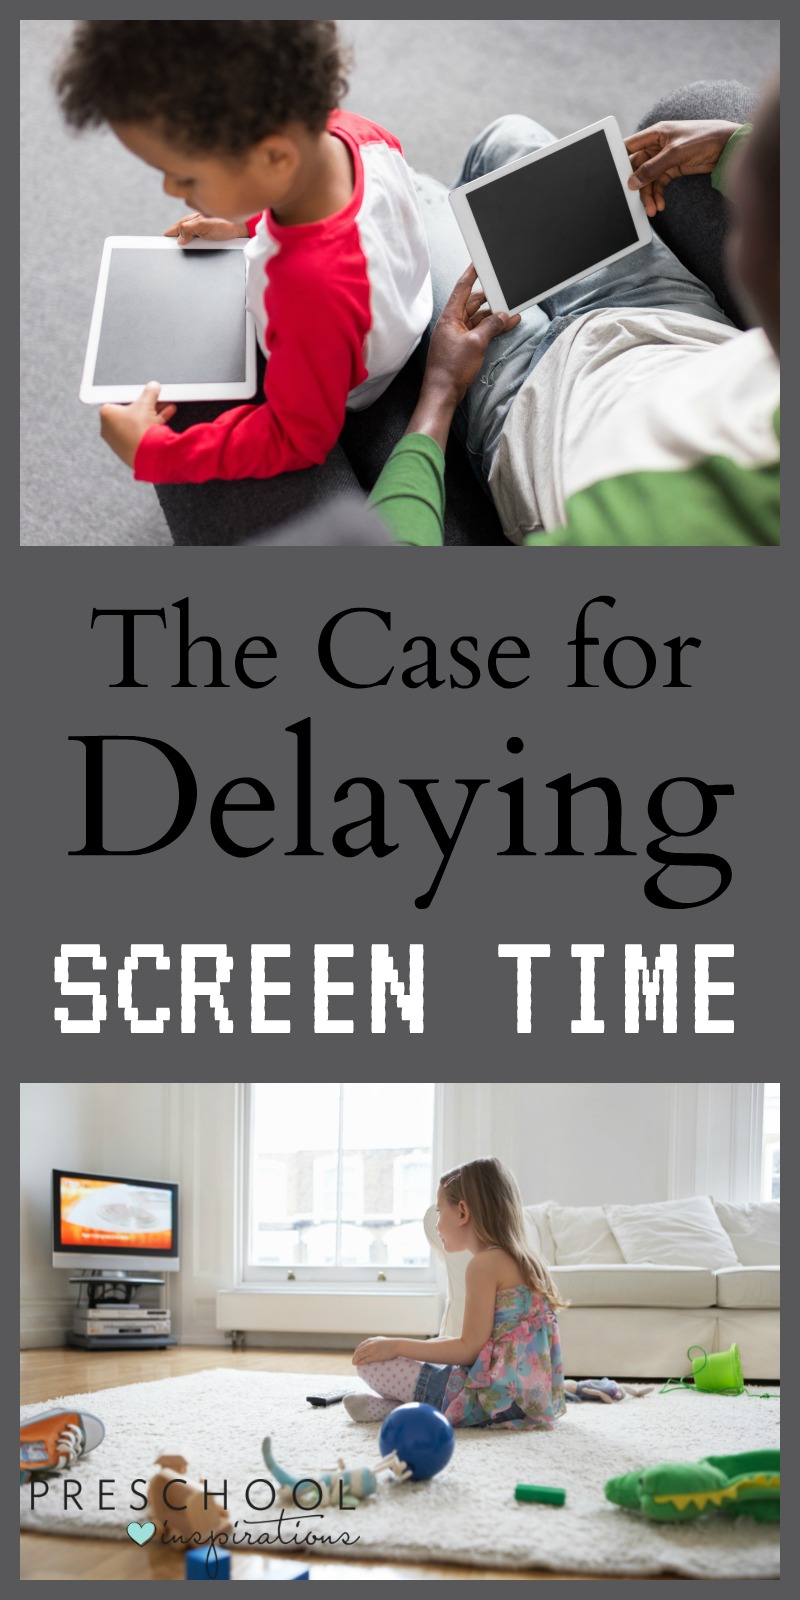 The Case for Delaying Screen Time for Kids. Why and how to limit screen time for young children - 5 tips and practical guidelines. Preschool Inspirations.